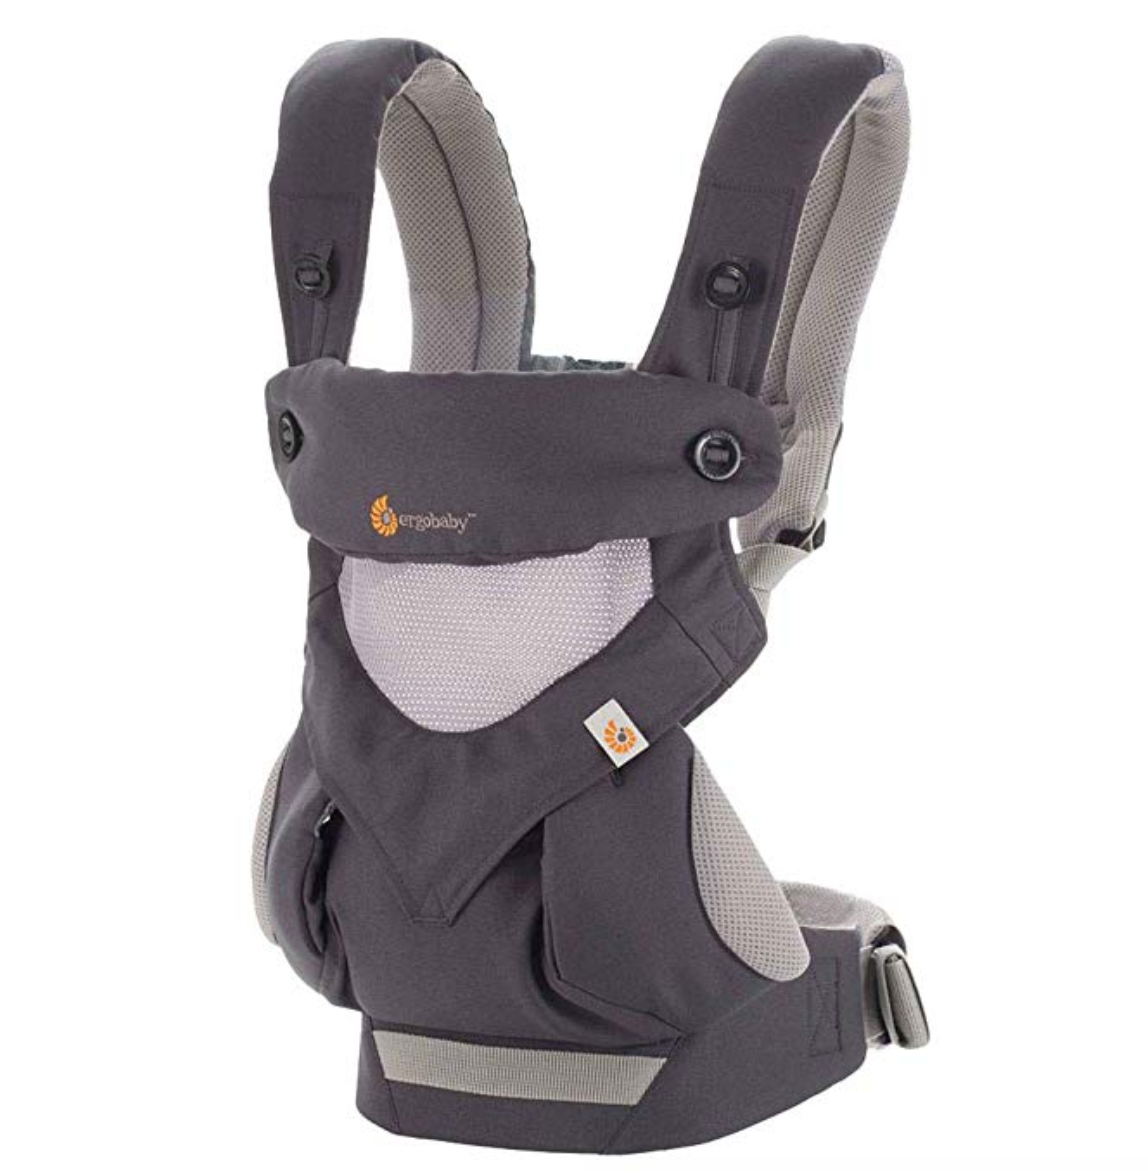 Ergobaby 360 Cool Air Carrier - 5 Best Baby Carriers To Keep Baby Secure